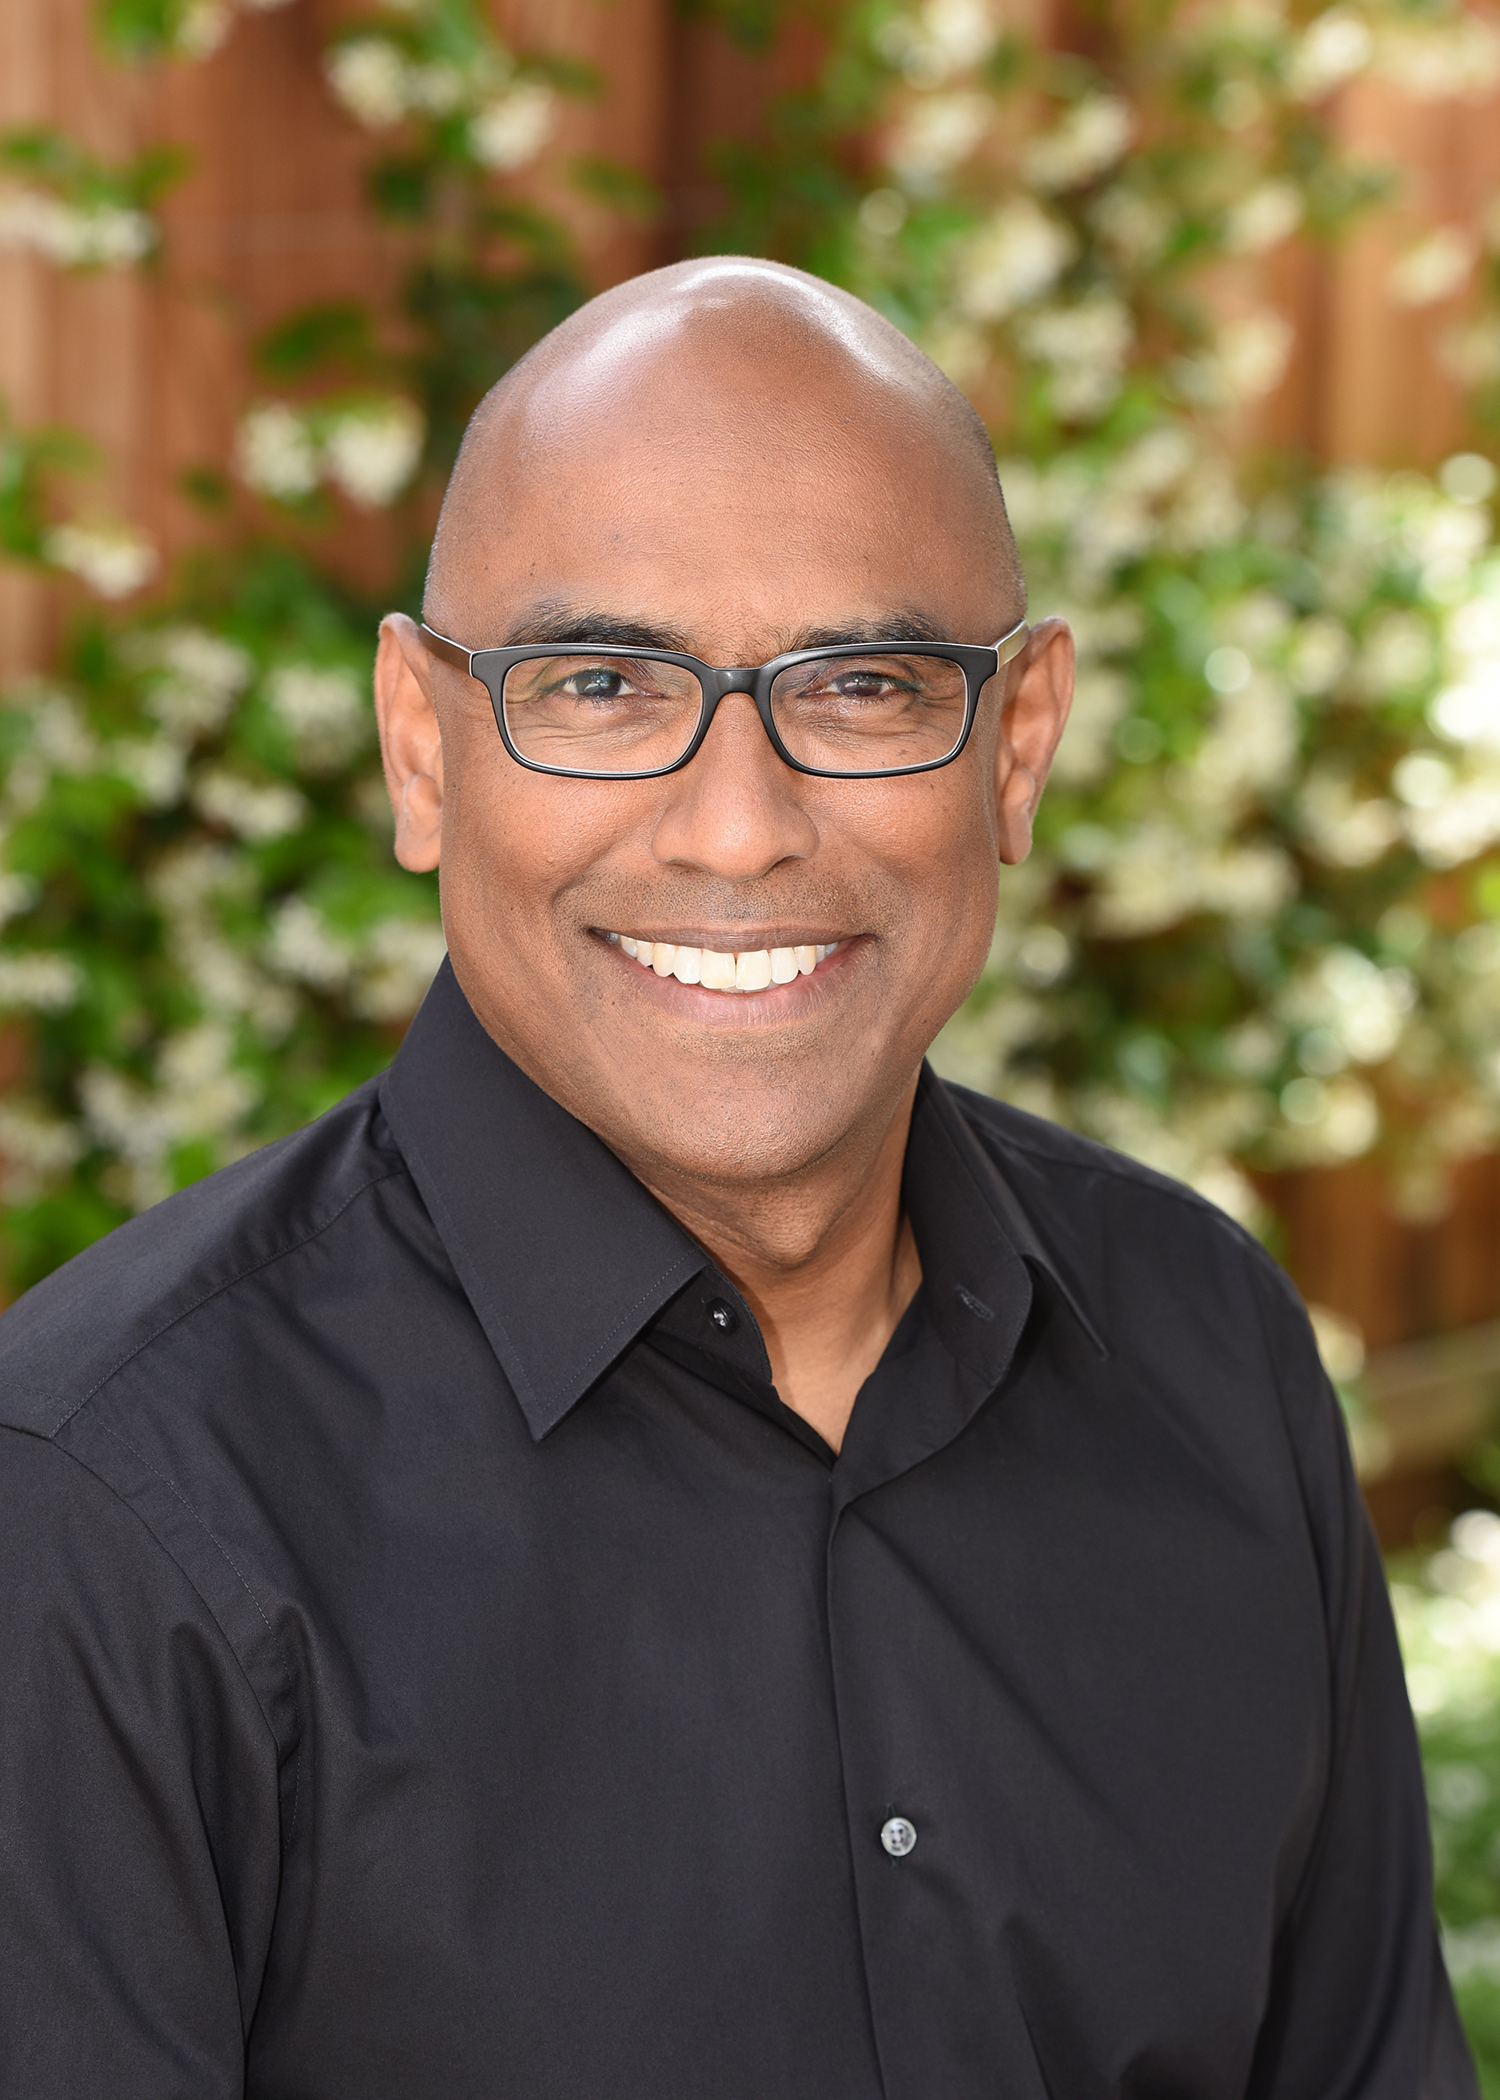 Naresh Shanker - Xerox , Senior Vice President, Chief Technology Officer and Executive LGBT Sponsor